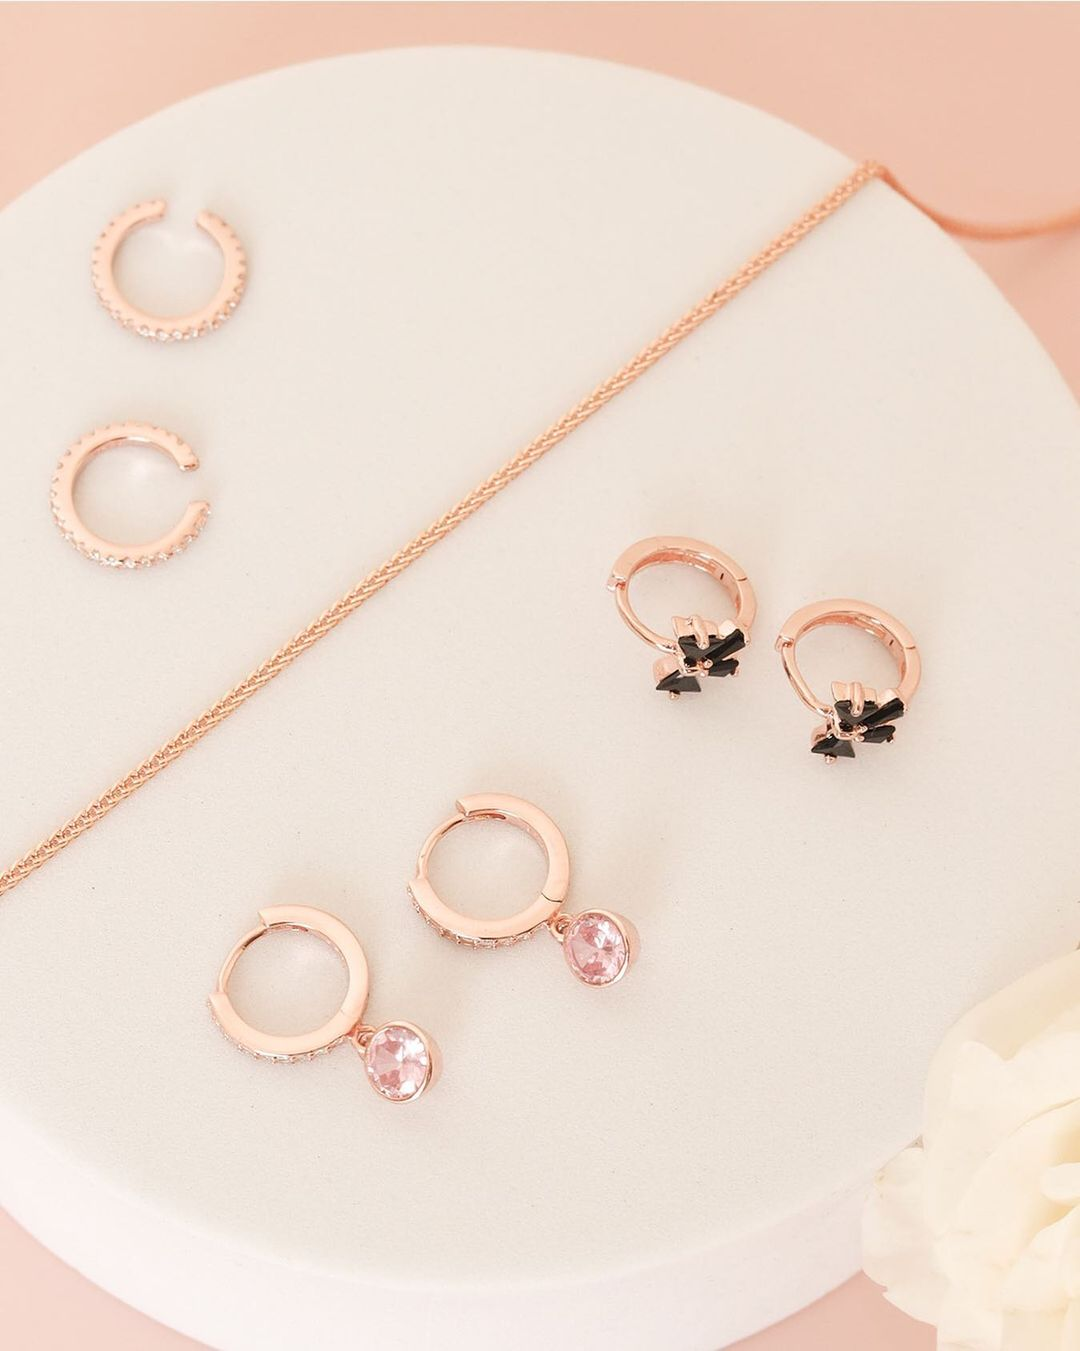 Valentines day gift ideas - Stage Chic's Rose Collection Jewelry